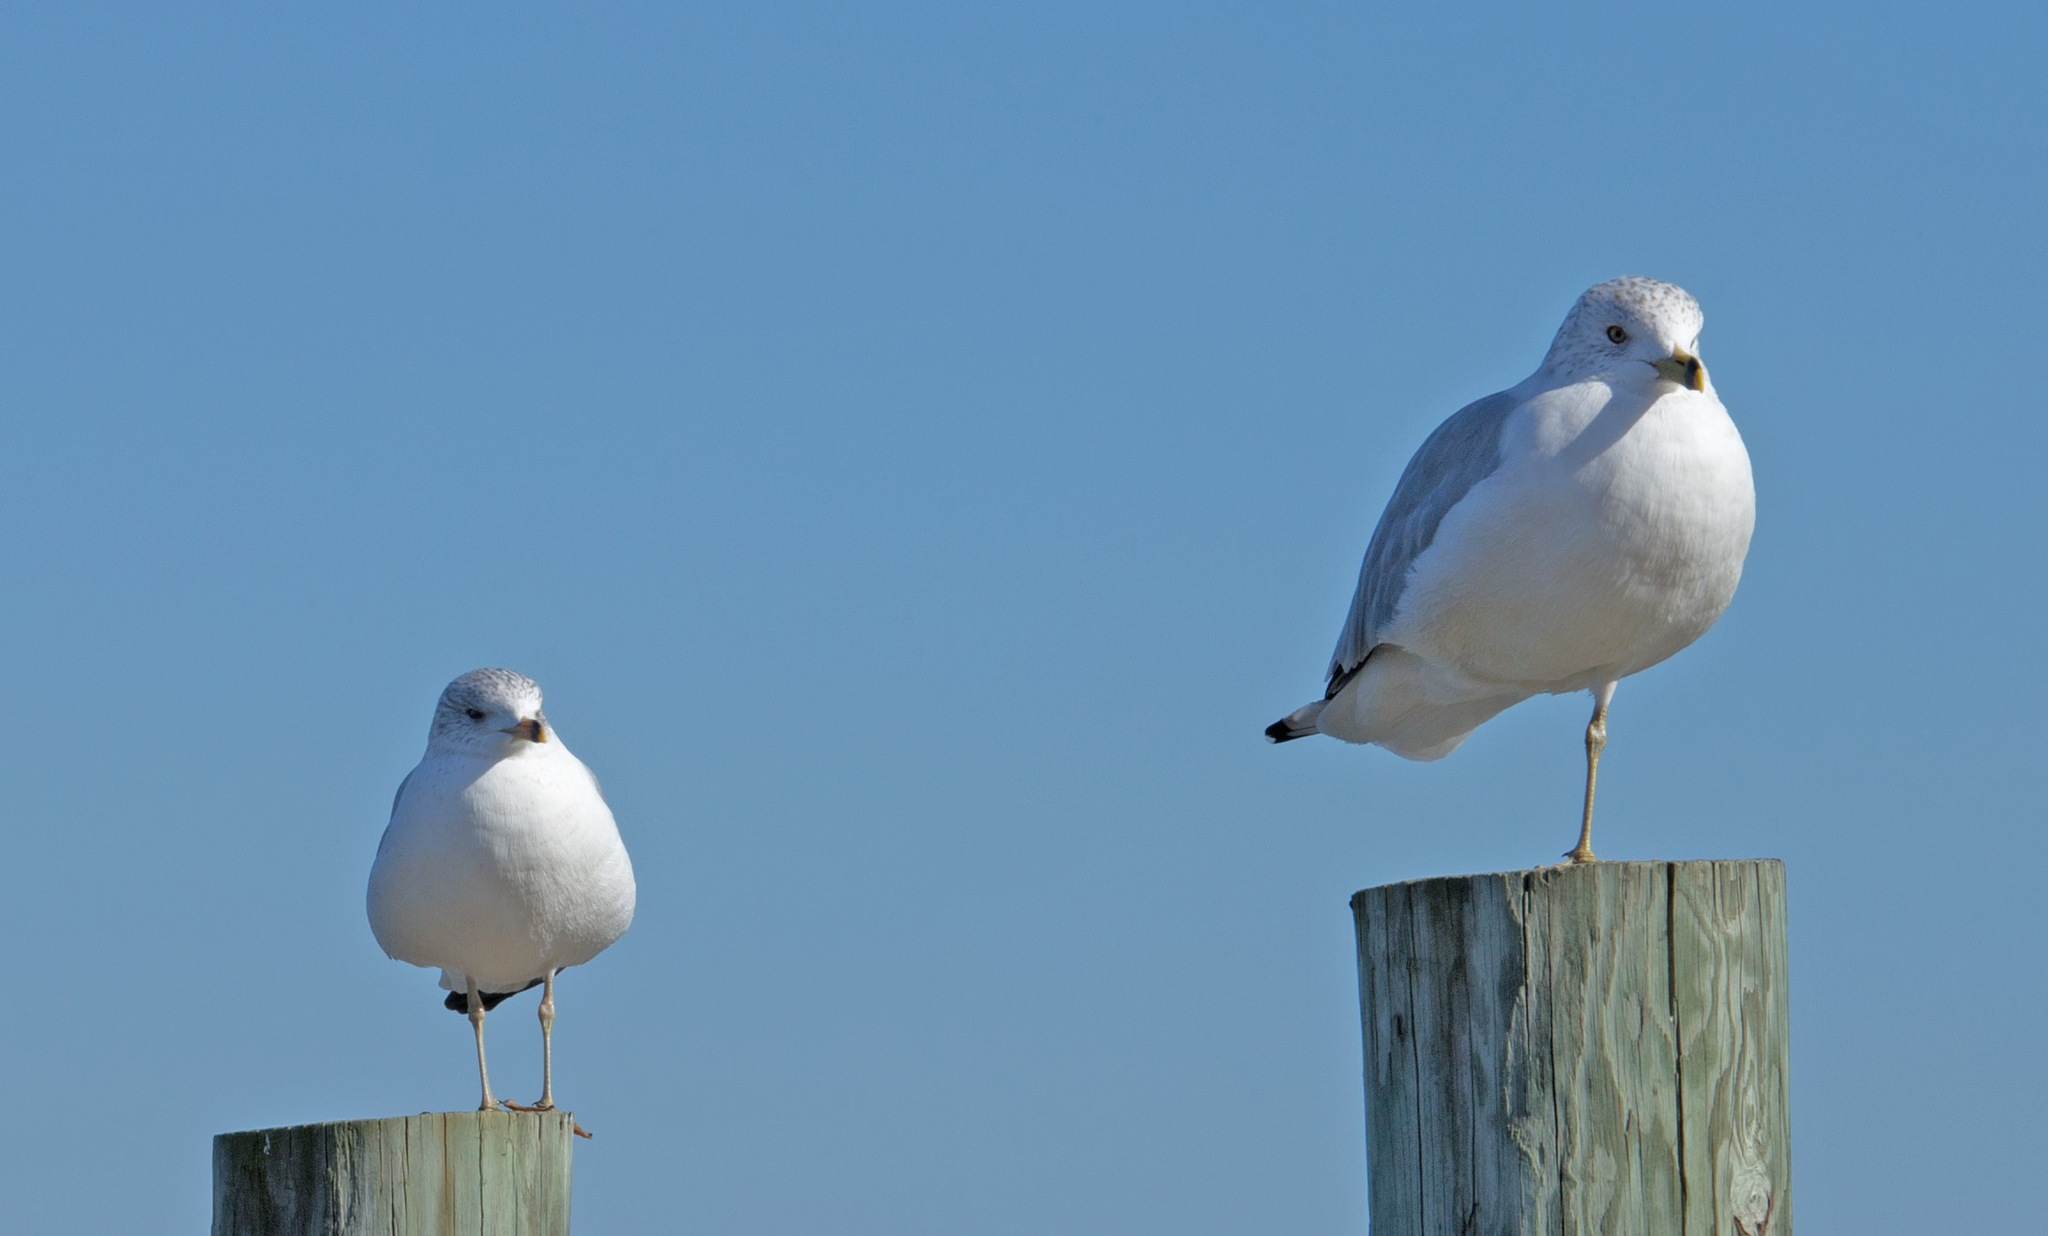 The one legged Gull by Mary Carter